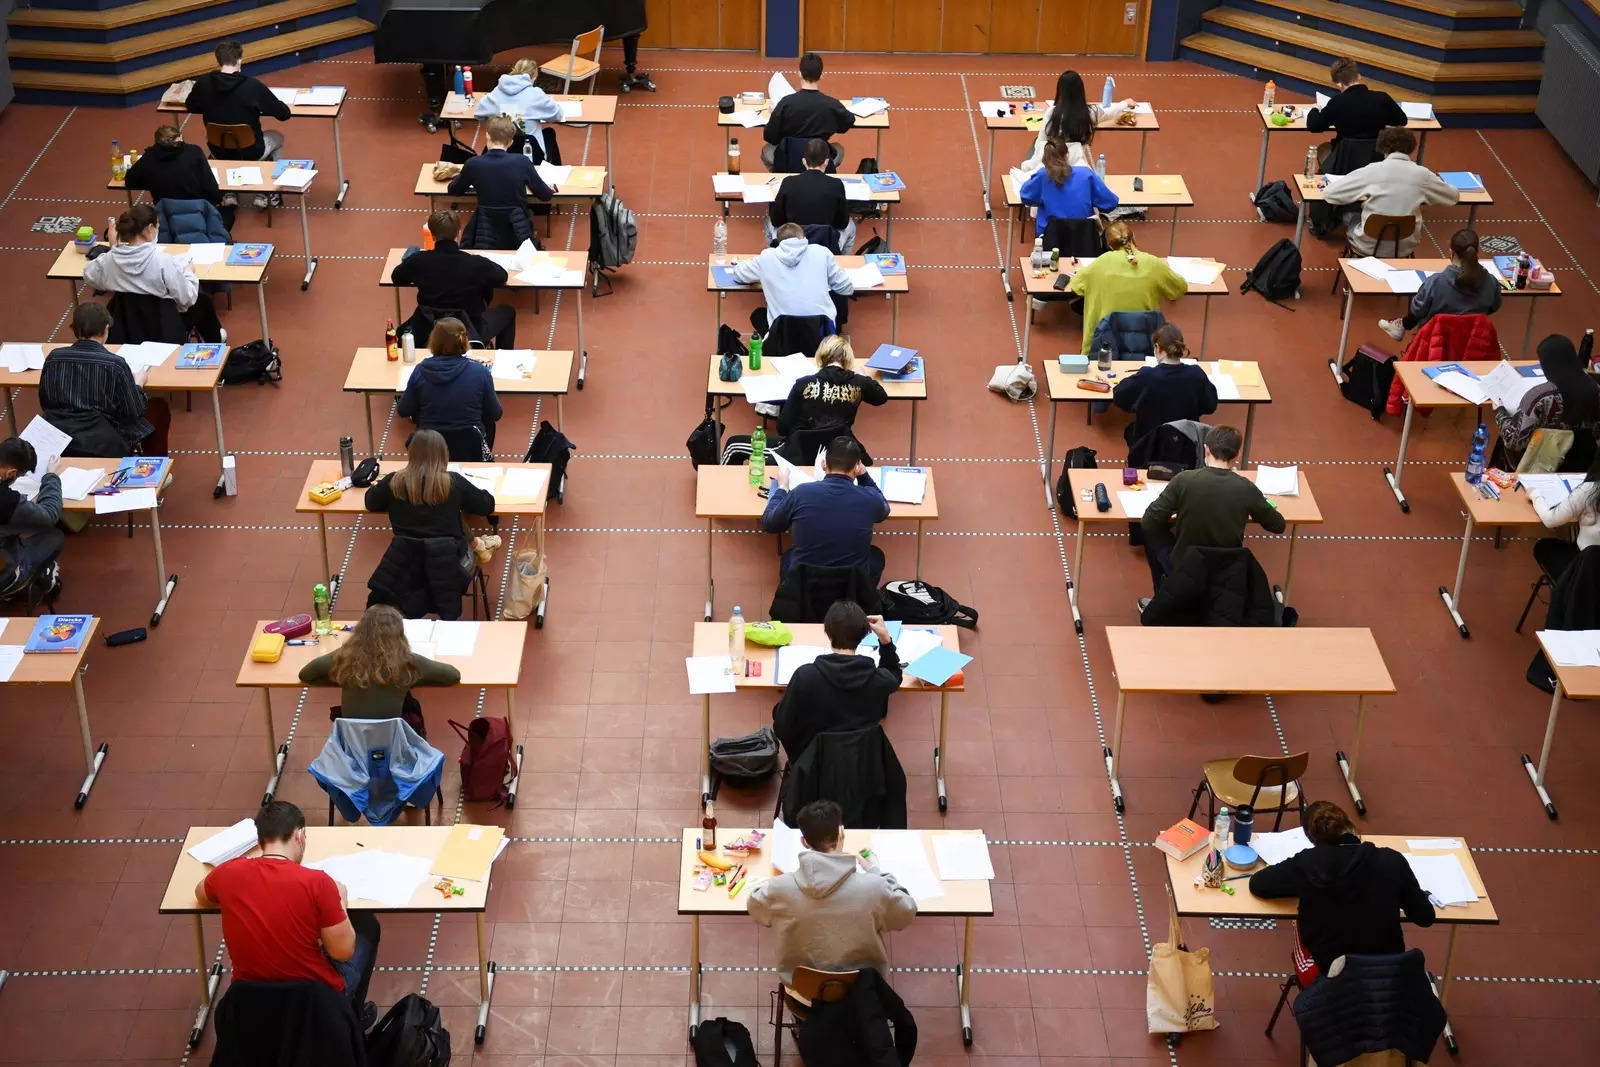 Tamil Nadu state universities will conduct an online exam for all students starting June 14